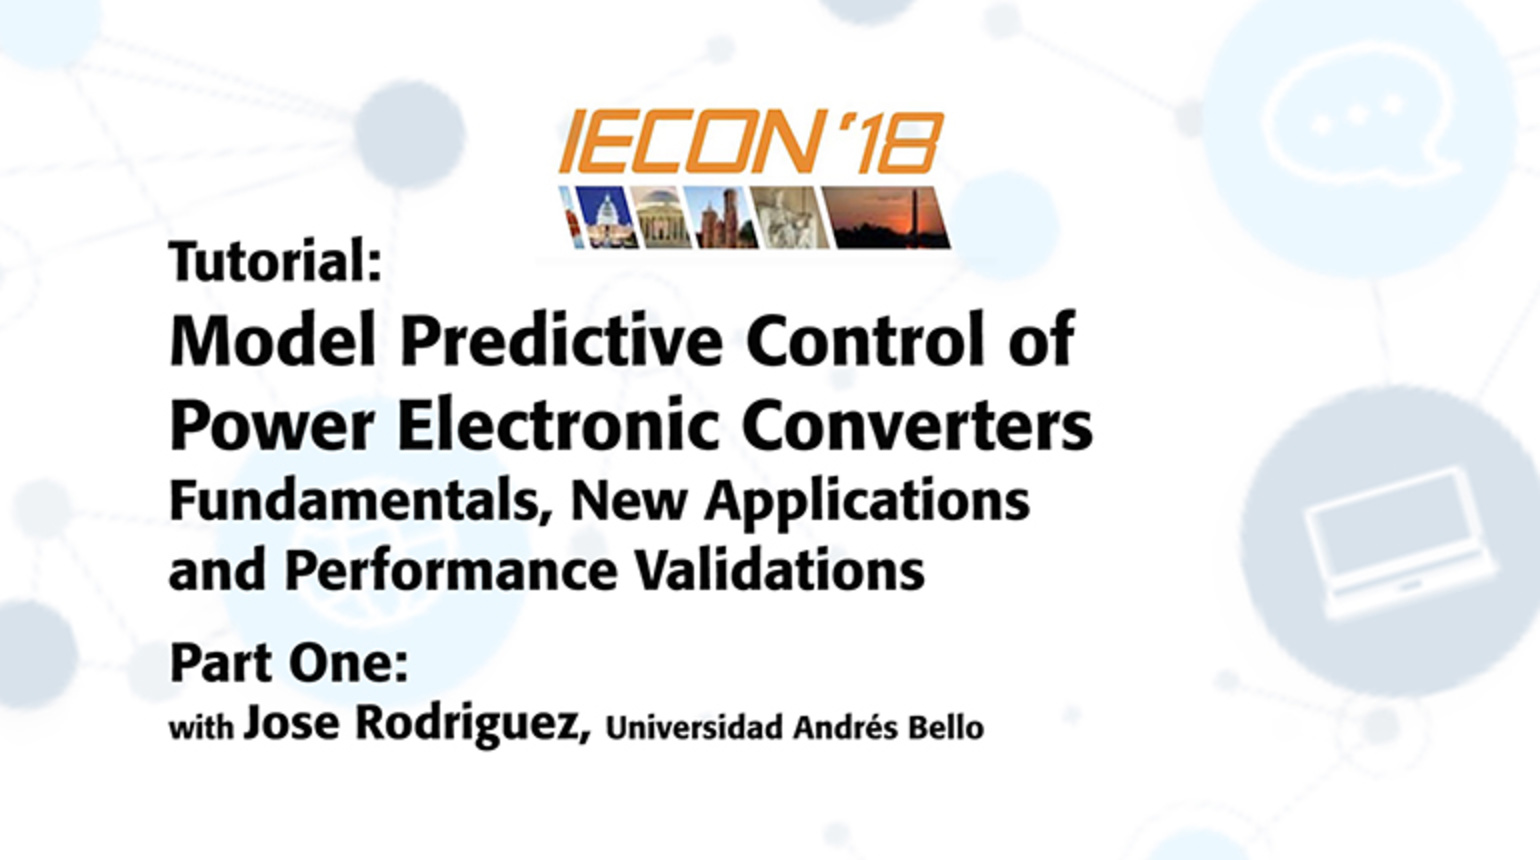 Tutorial: Model Predictive Control of Power Electronic Converters, Part One, Jose Rodriguez - IECON 2018